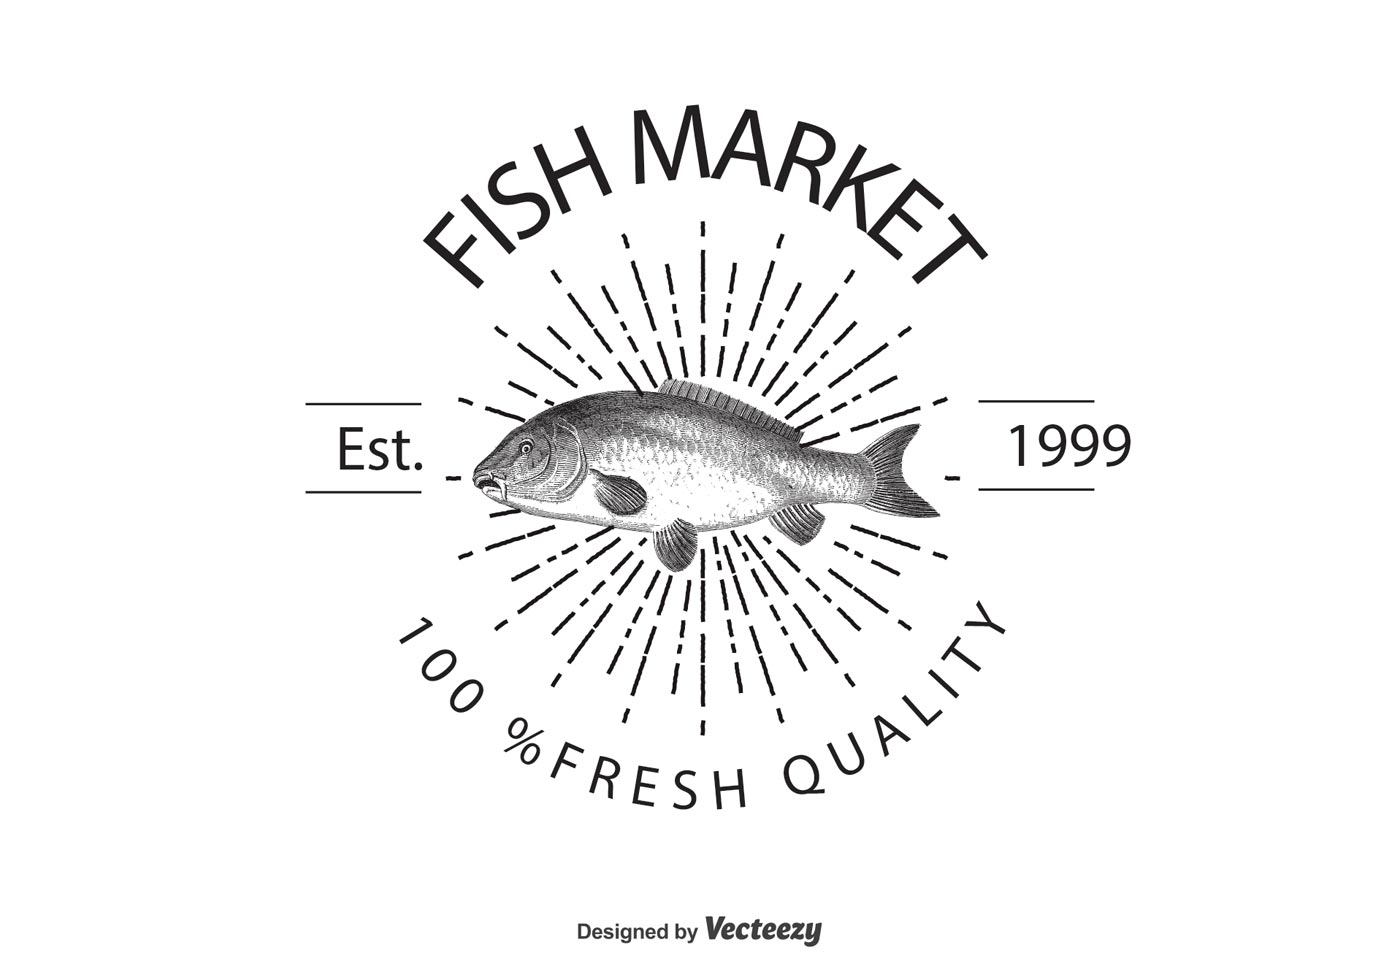 vintage fish market logo template download free vector art stock graphics images. Black Bedroom Furniture Sets. Home Design Ideas